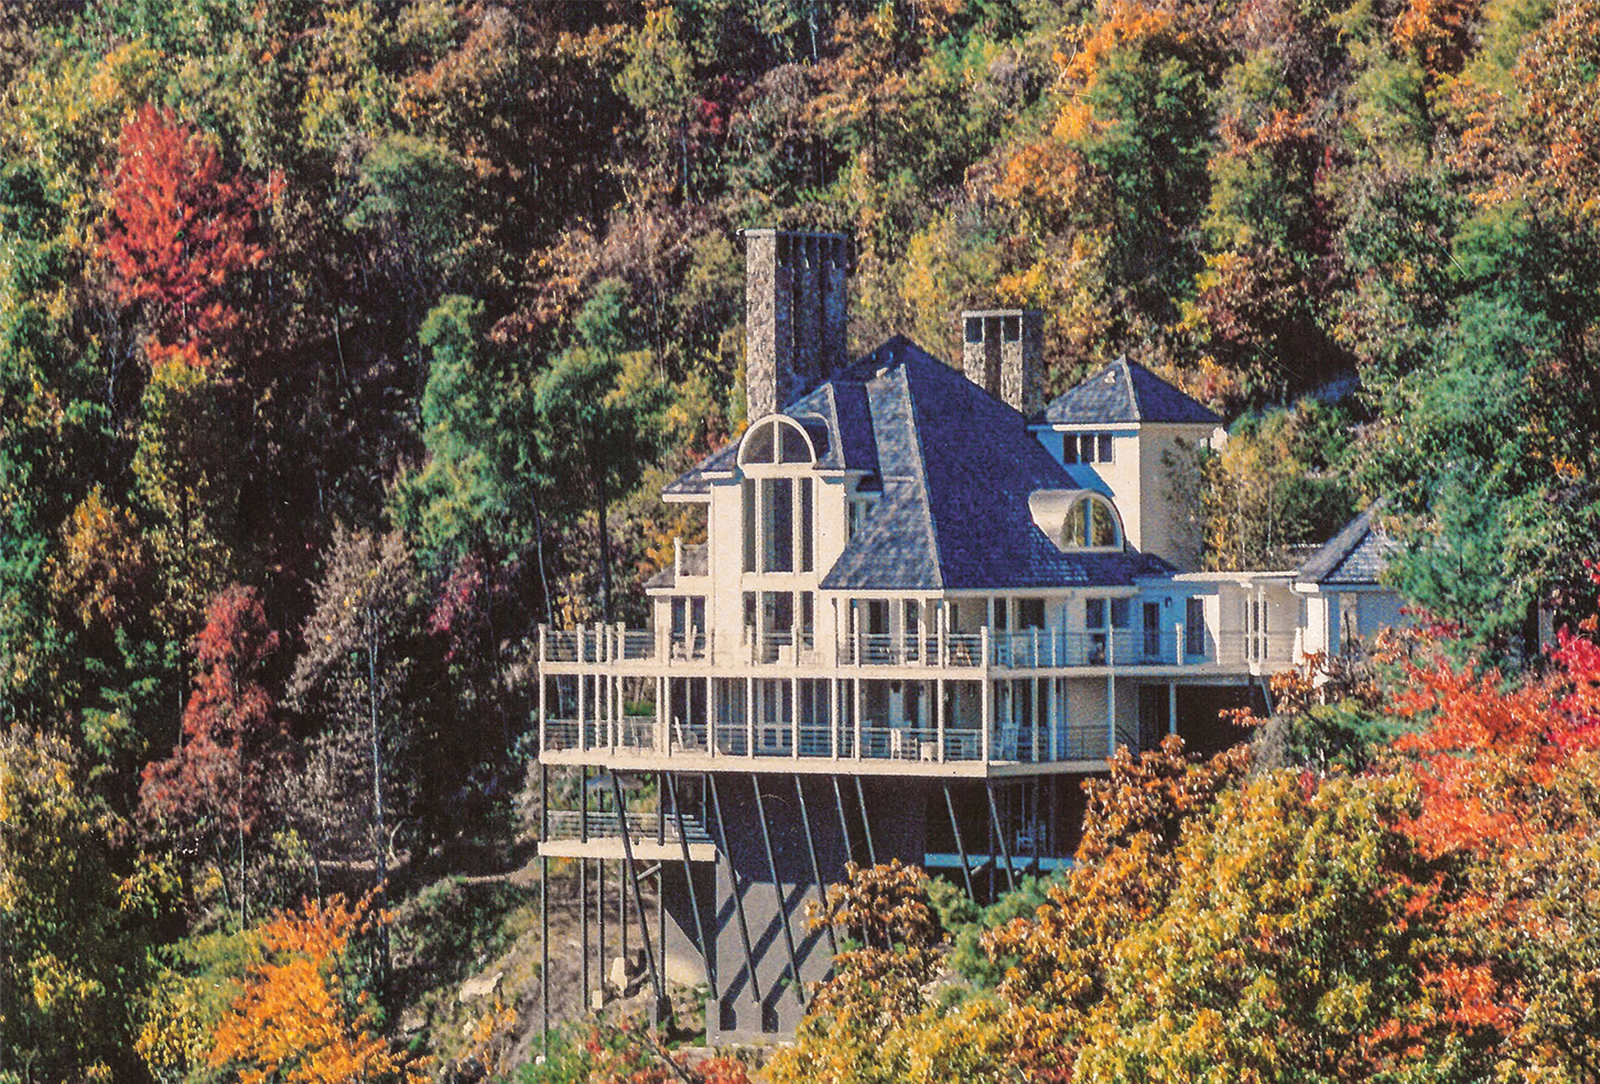 Chateau-vacation-rental-highlands-nc-exterior-view